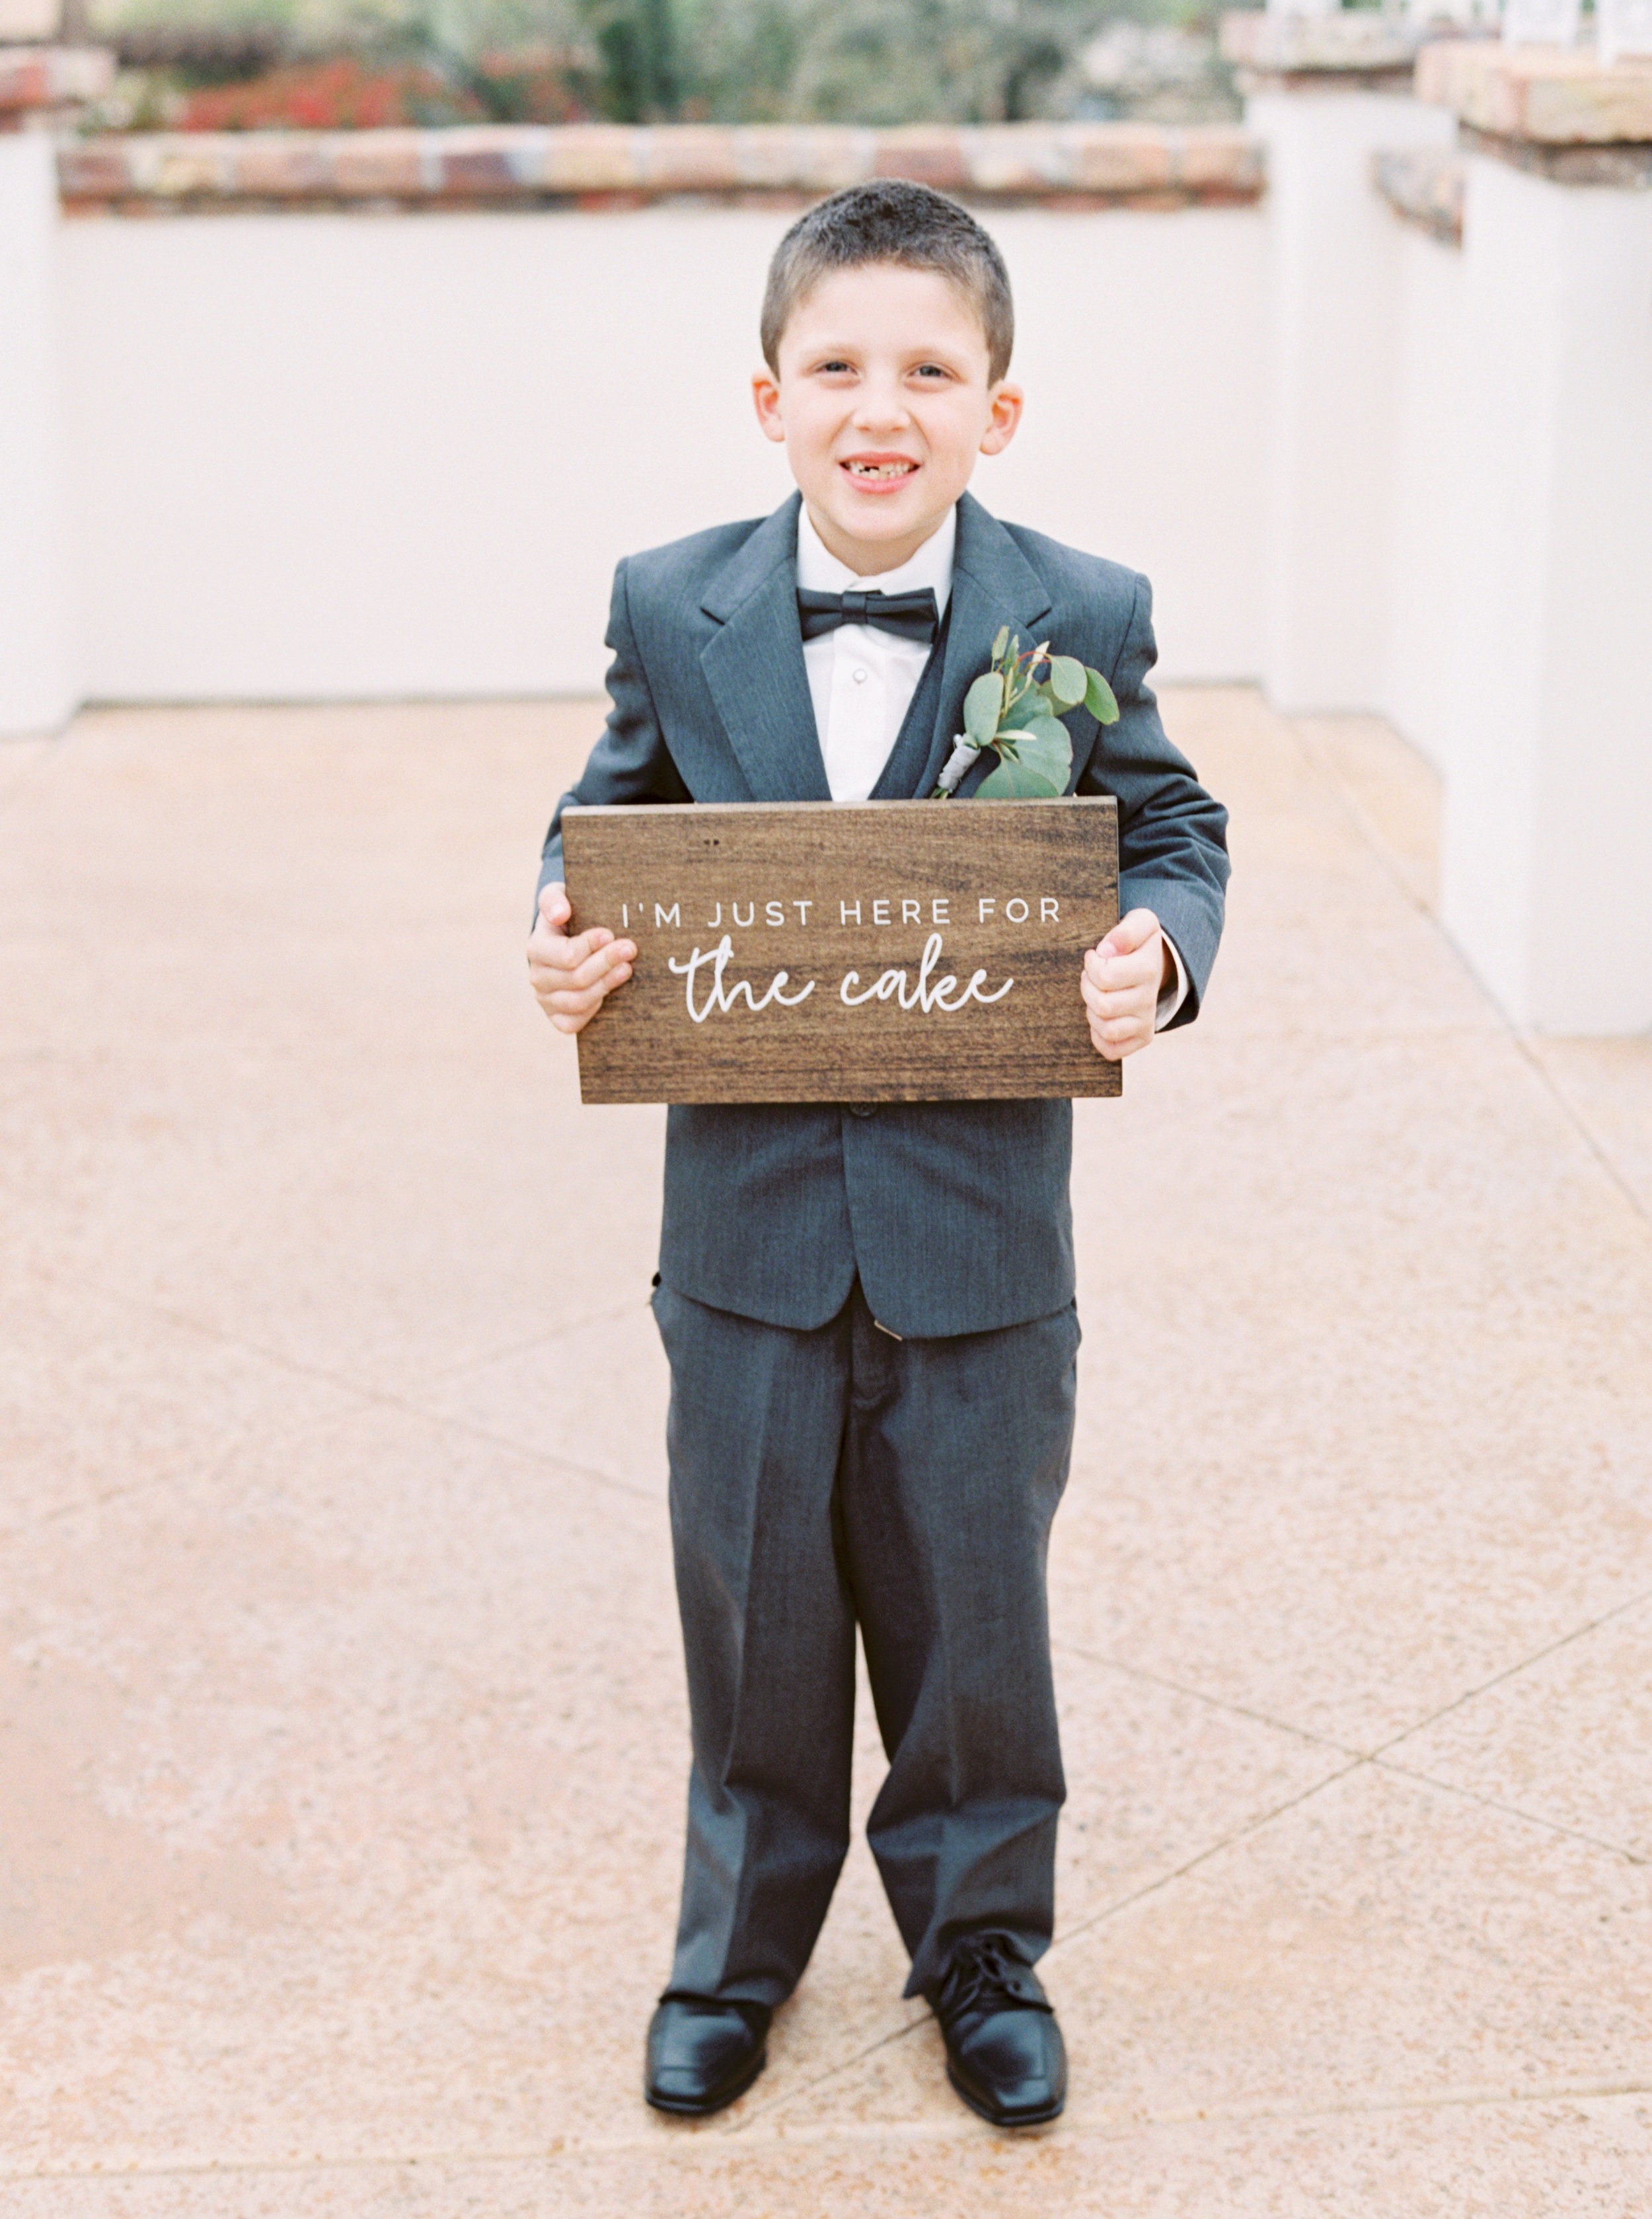 25 im just here for the cake wedding sign wooden custom sign ring bearer wood sign custom grey suit wedding party Life Design Events photos by Melissa Jill Photography.jpg